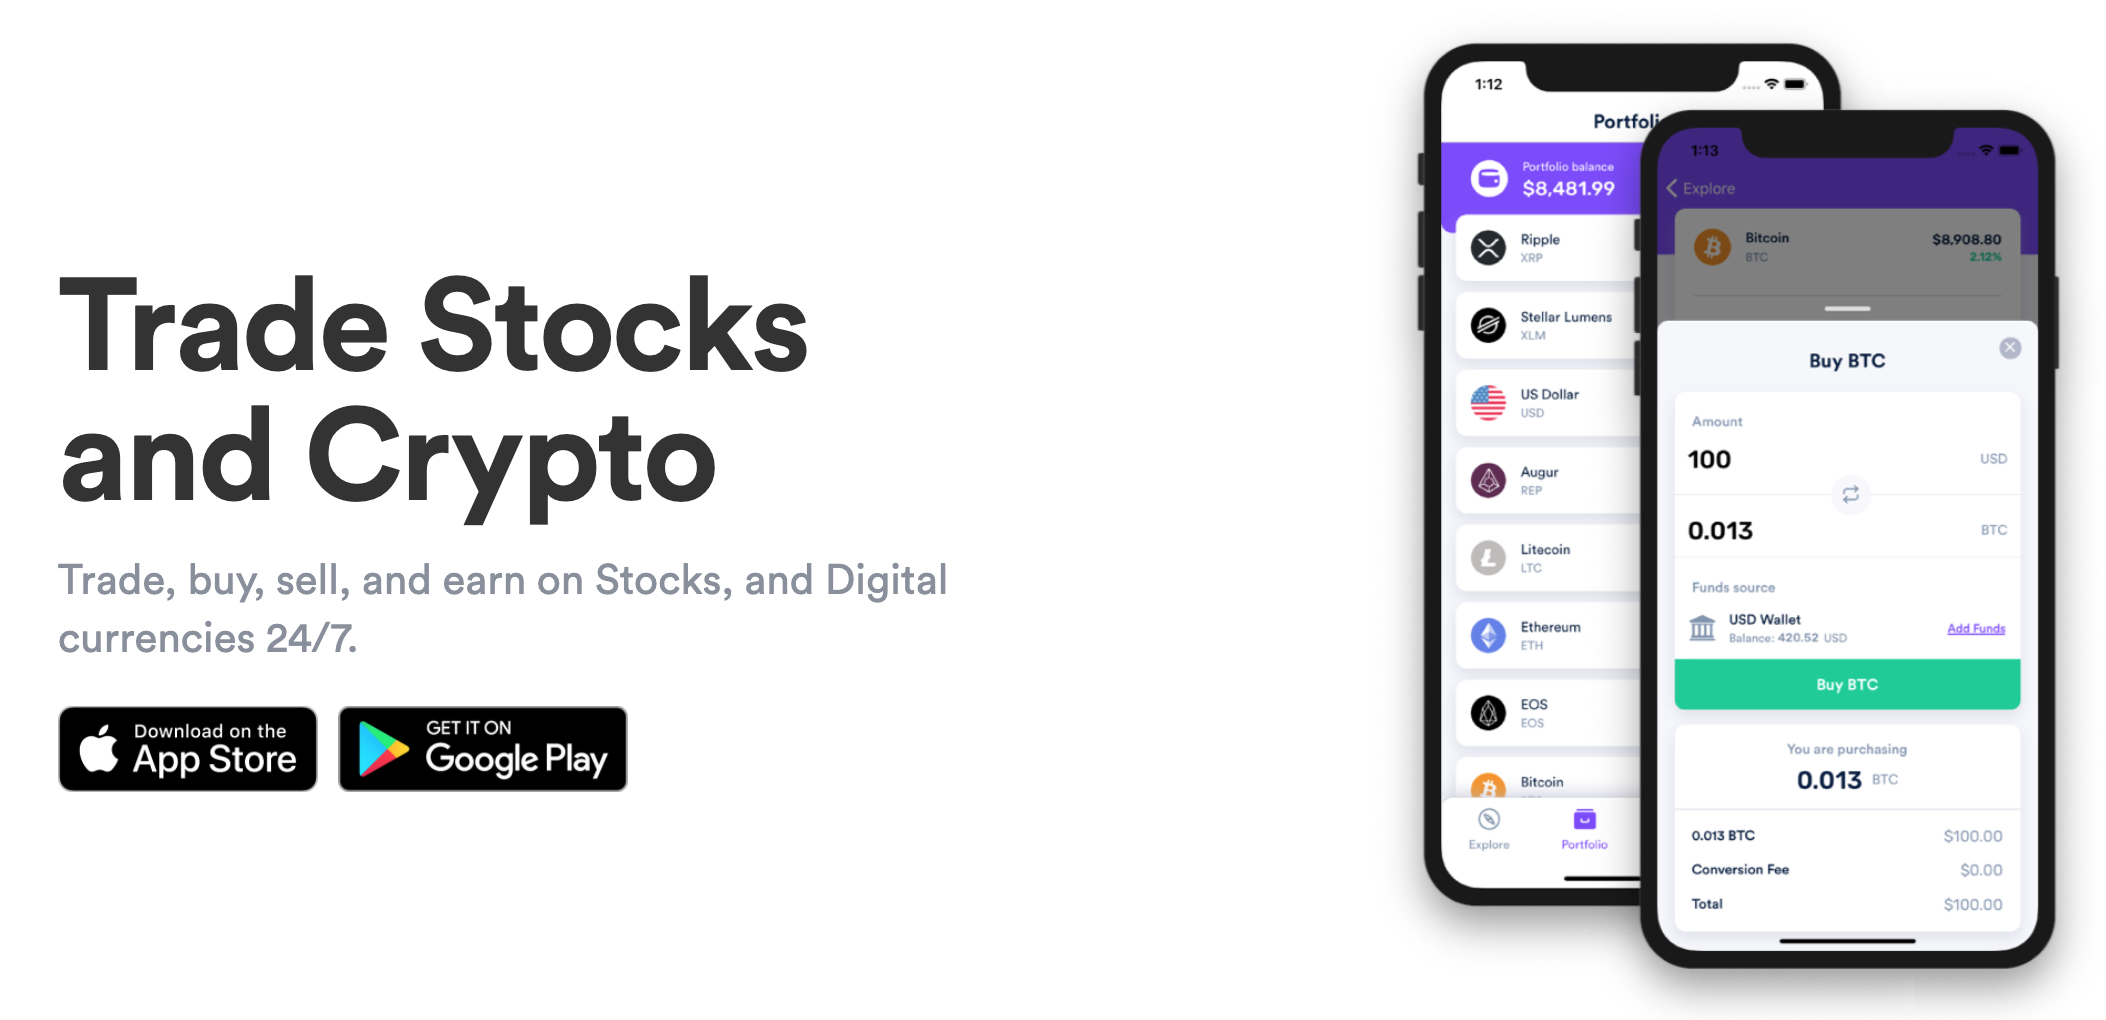 ios App AnchorUSD landing page on website